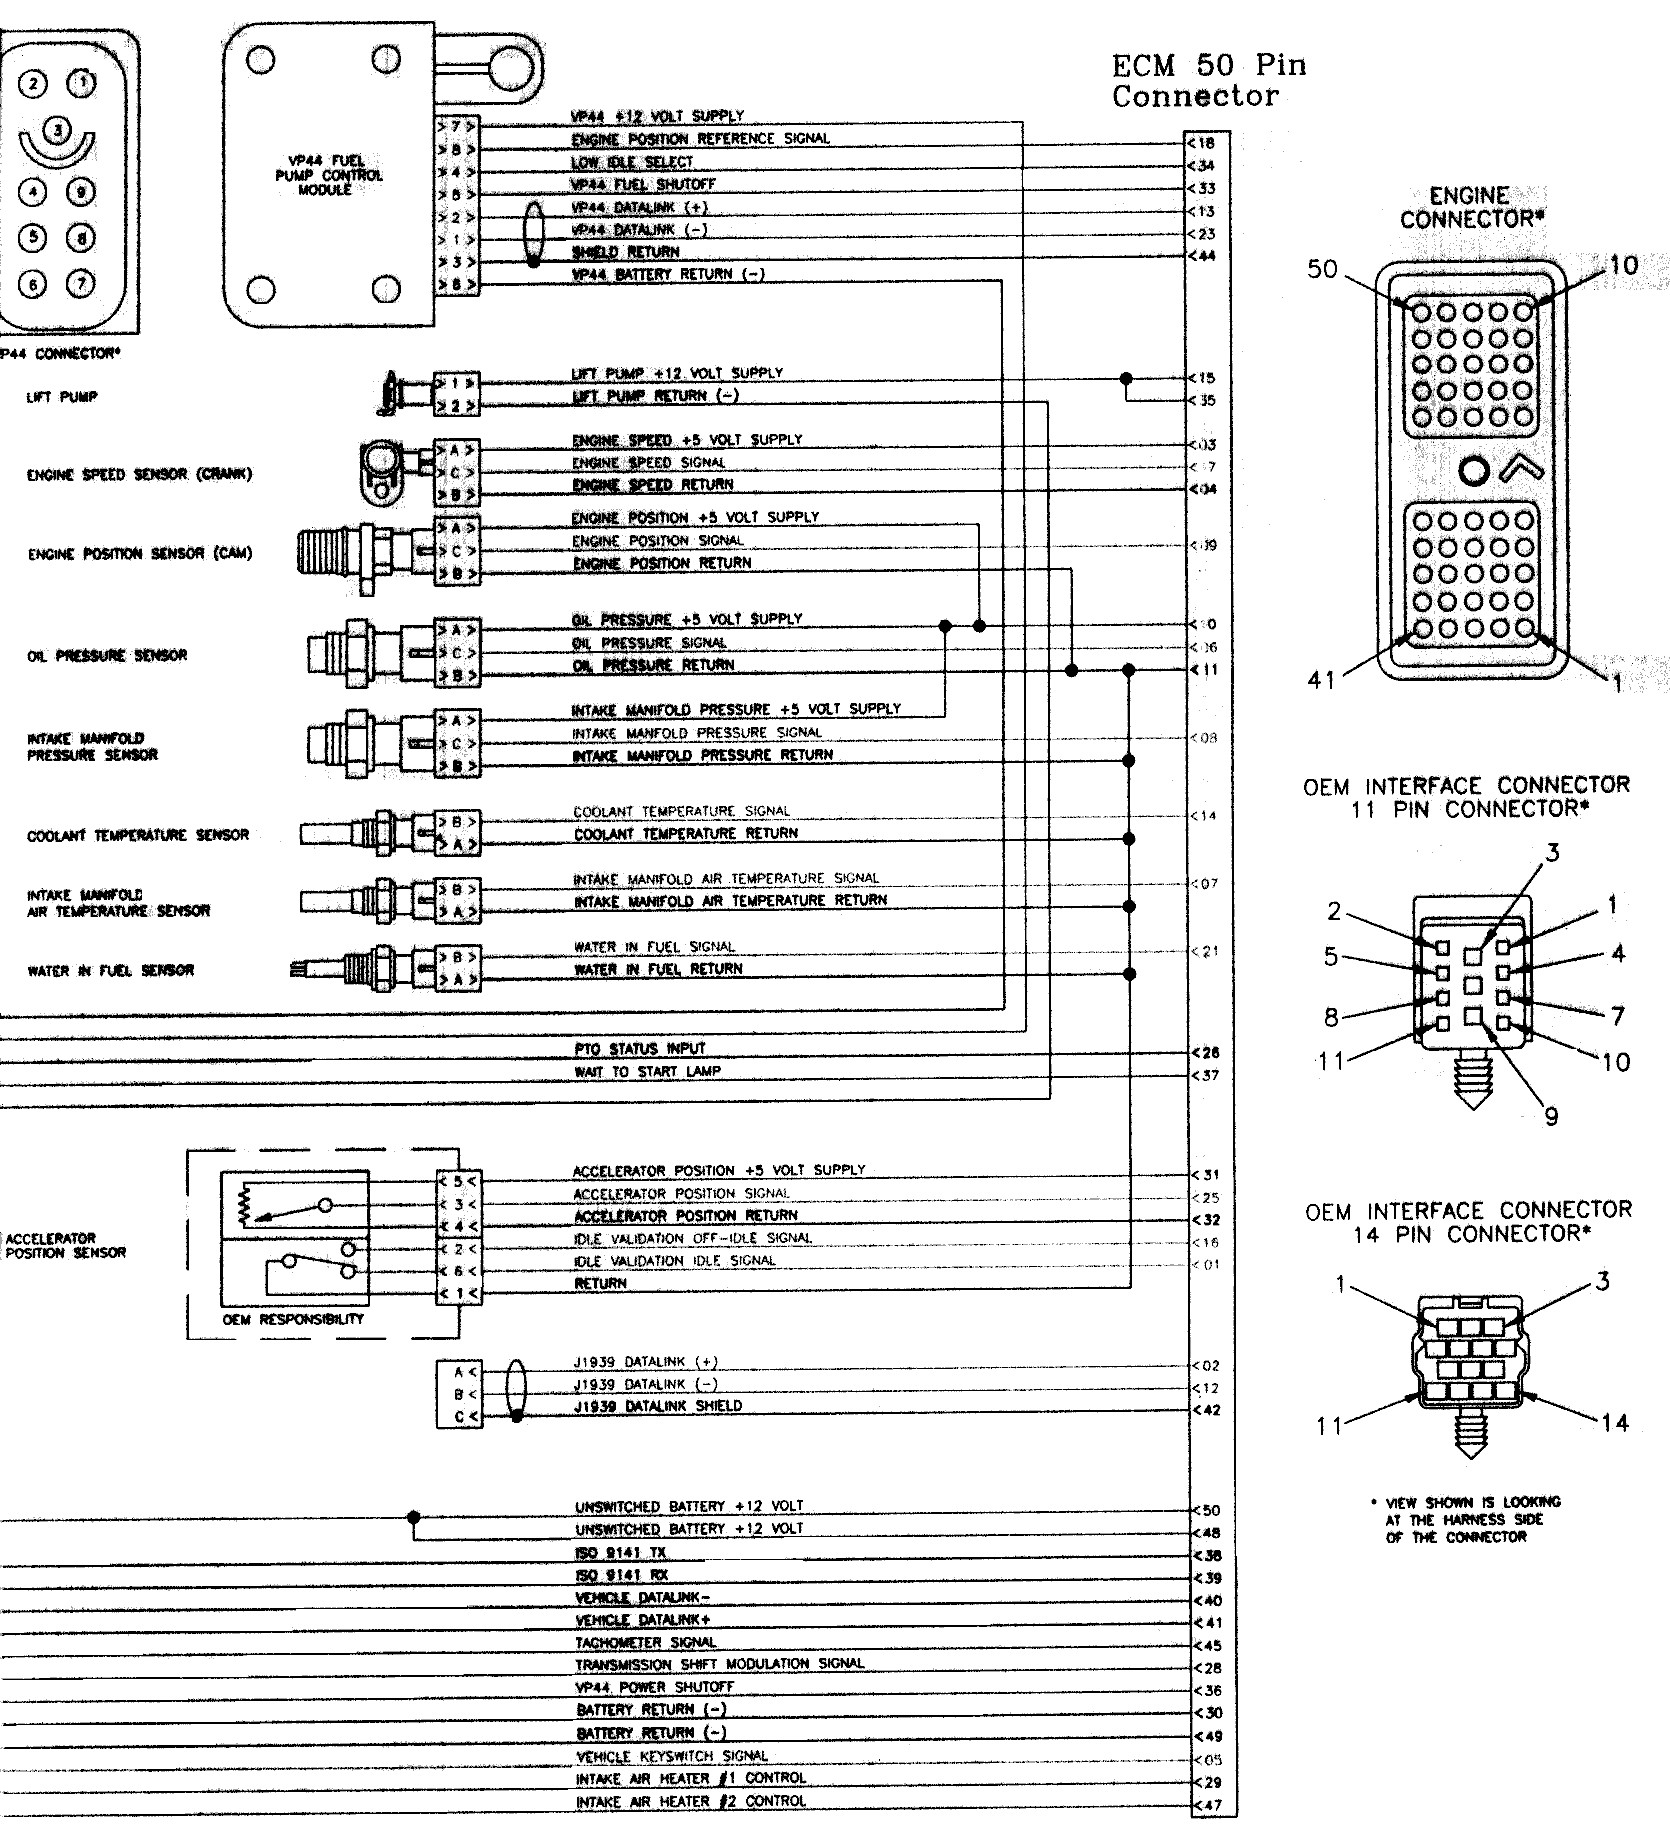 2005 dodge cummins ecm wiring diagram sample